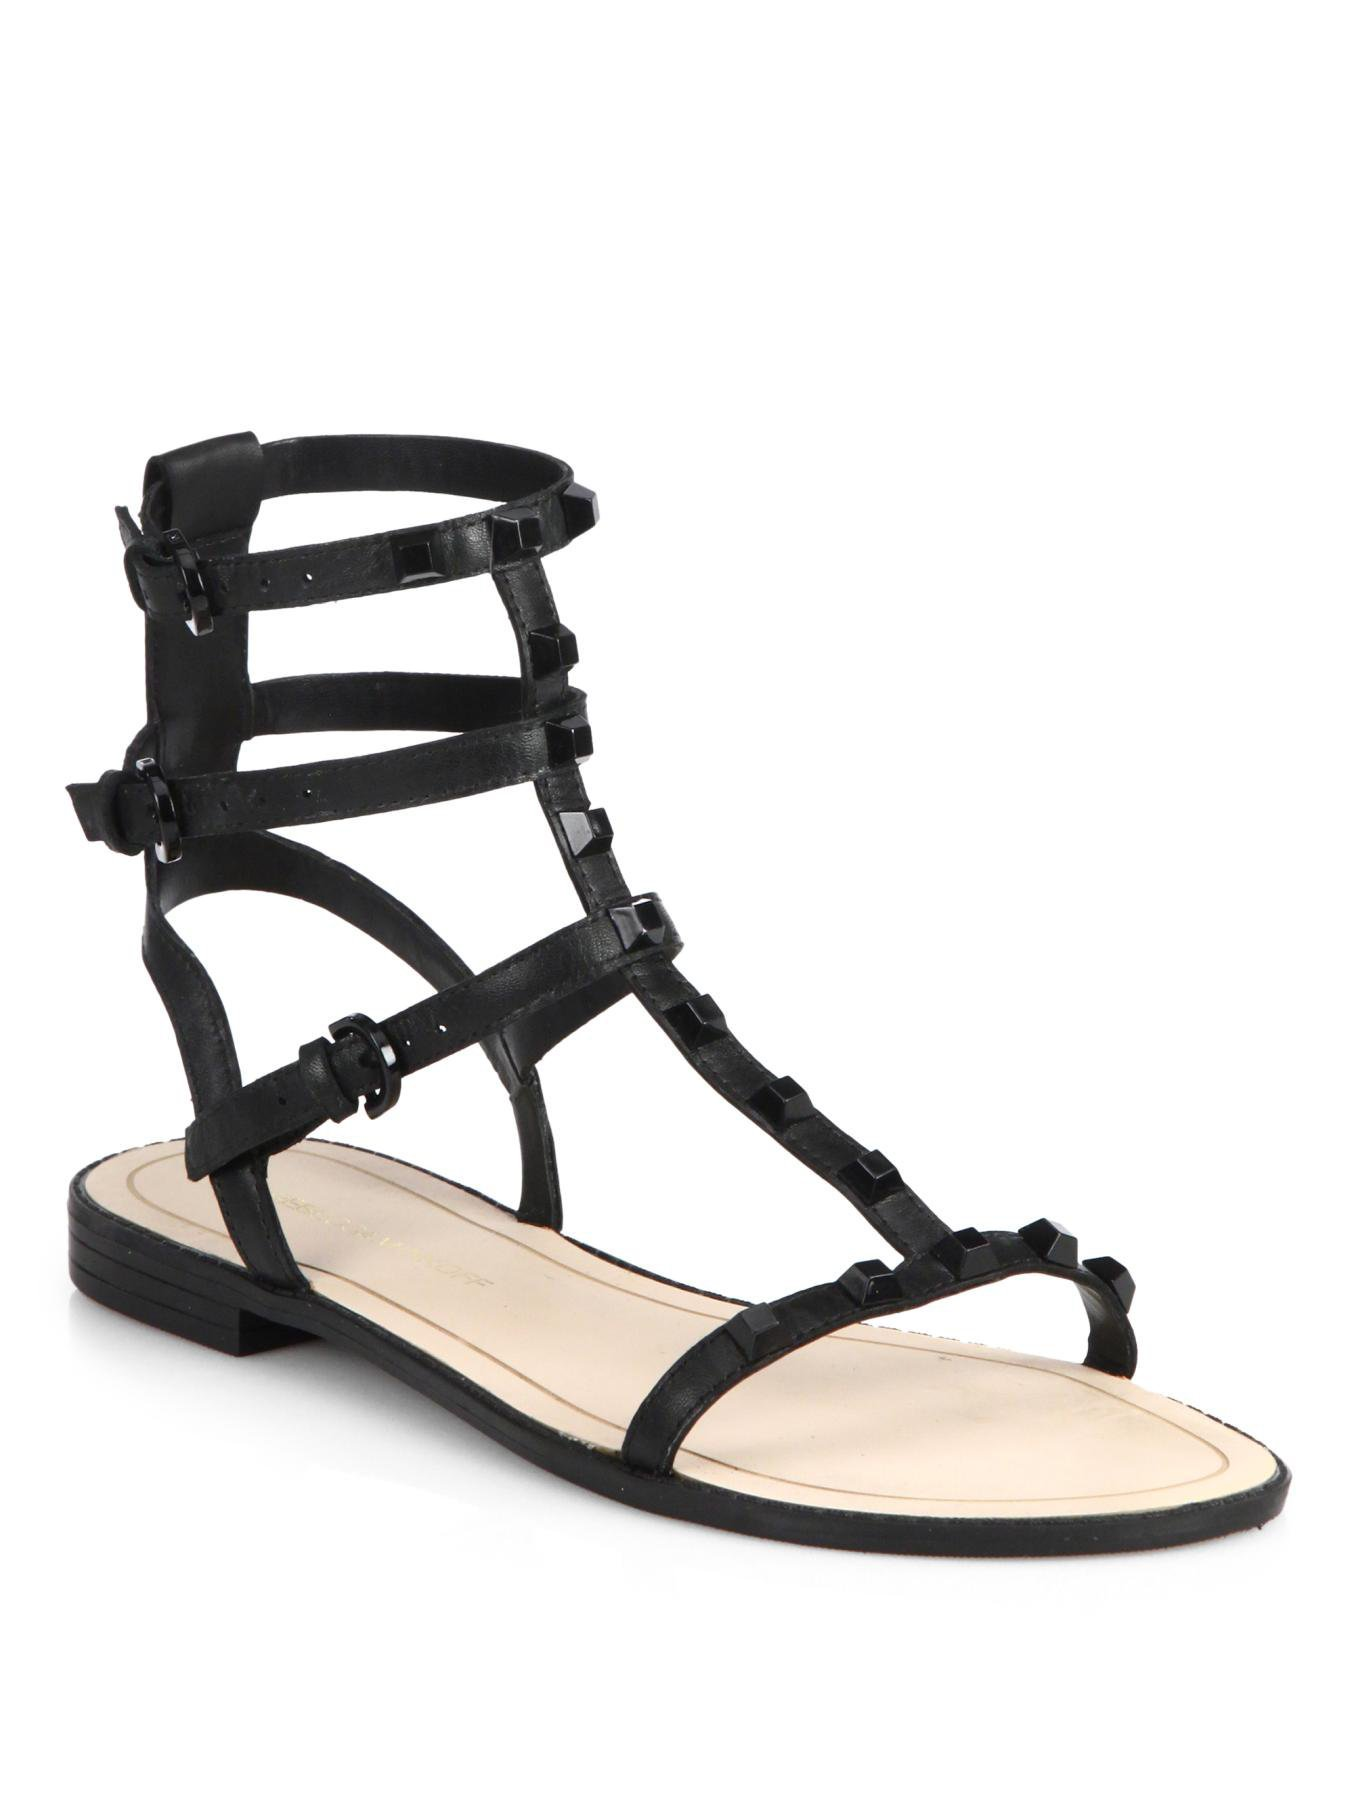 Rebecca Minkoff Stud-Embellished Gladiator Sandals extremely cheap price many kinds of sale online sale comfortable outlet with paypal order online S8dEVo